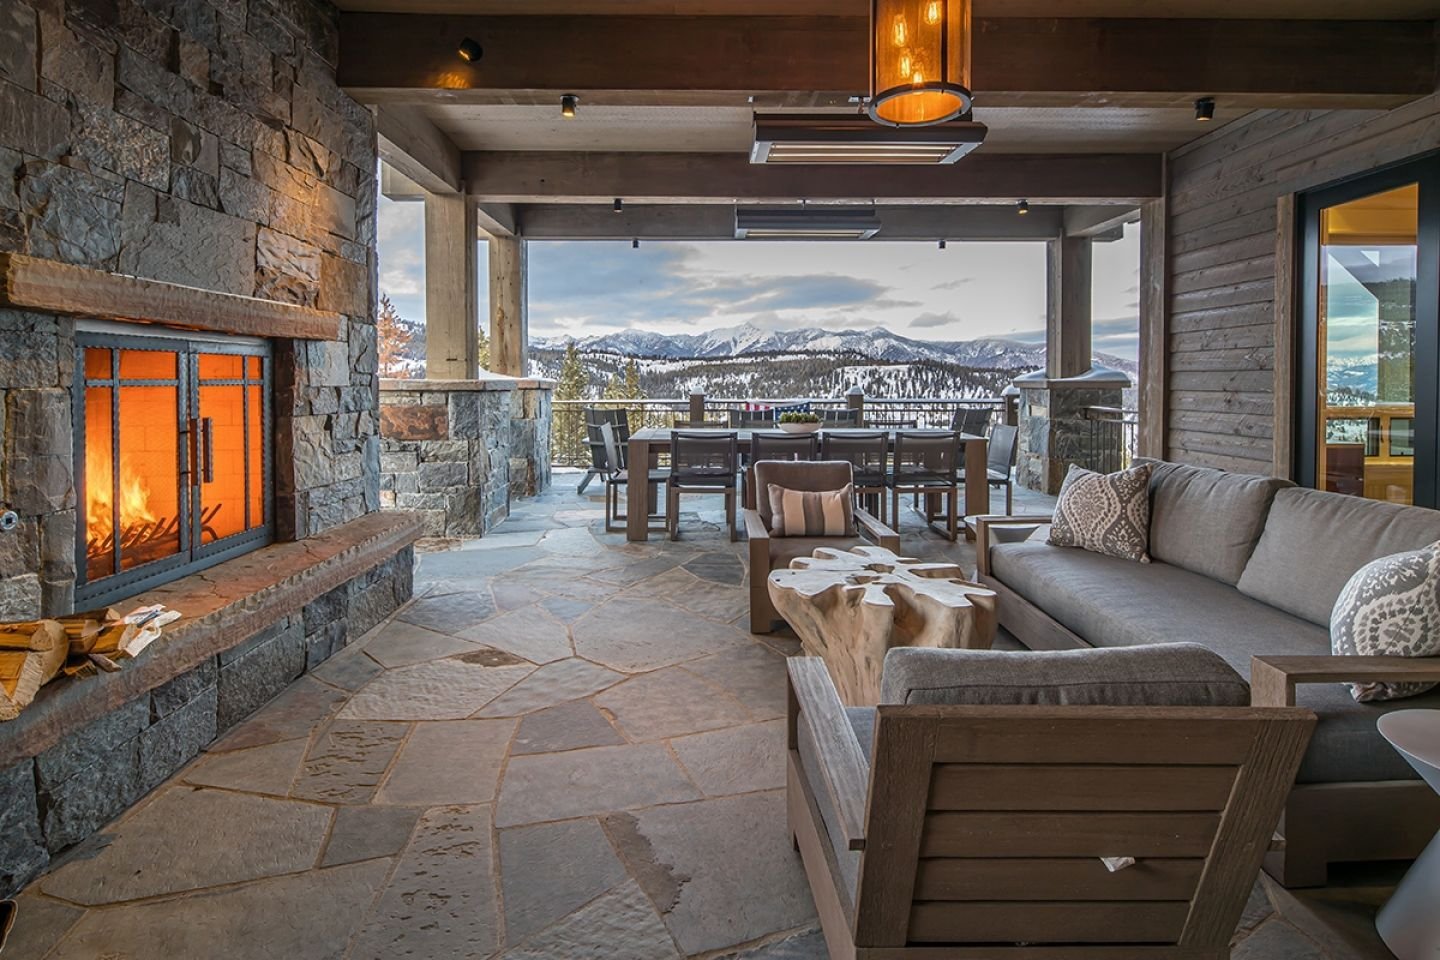 Are You Looking For Yellowstone Club Houses For Sale